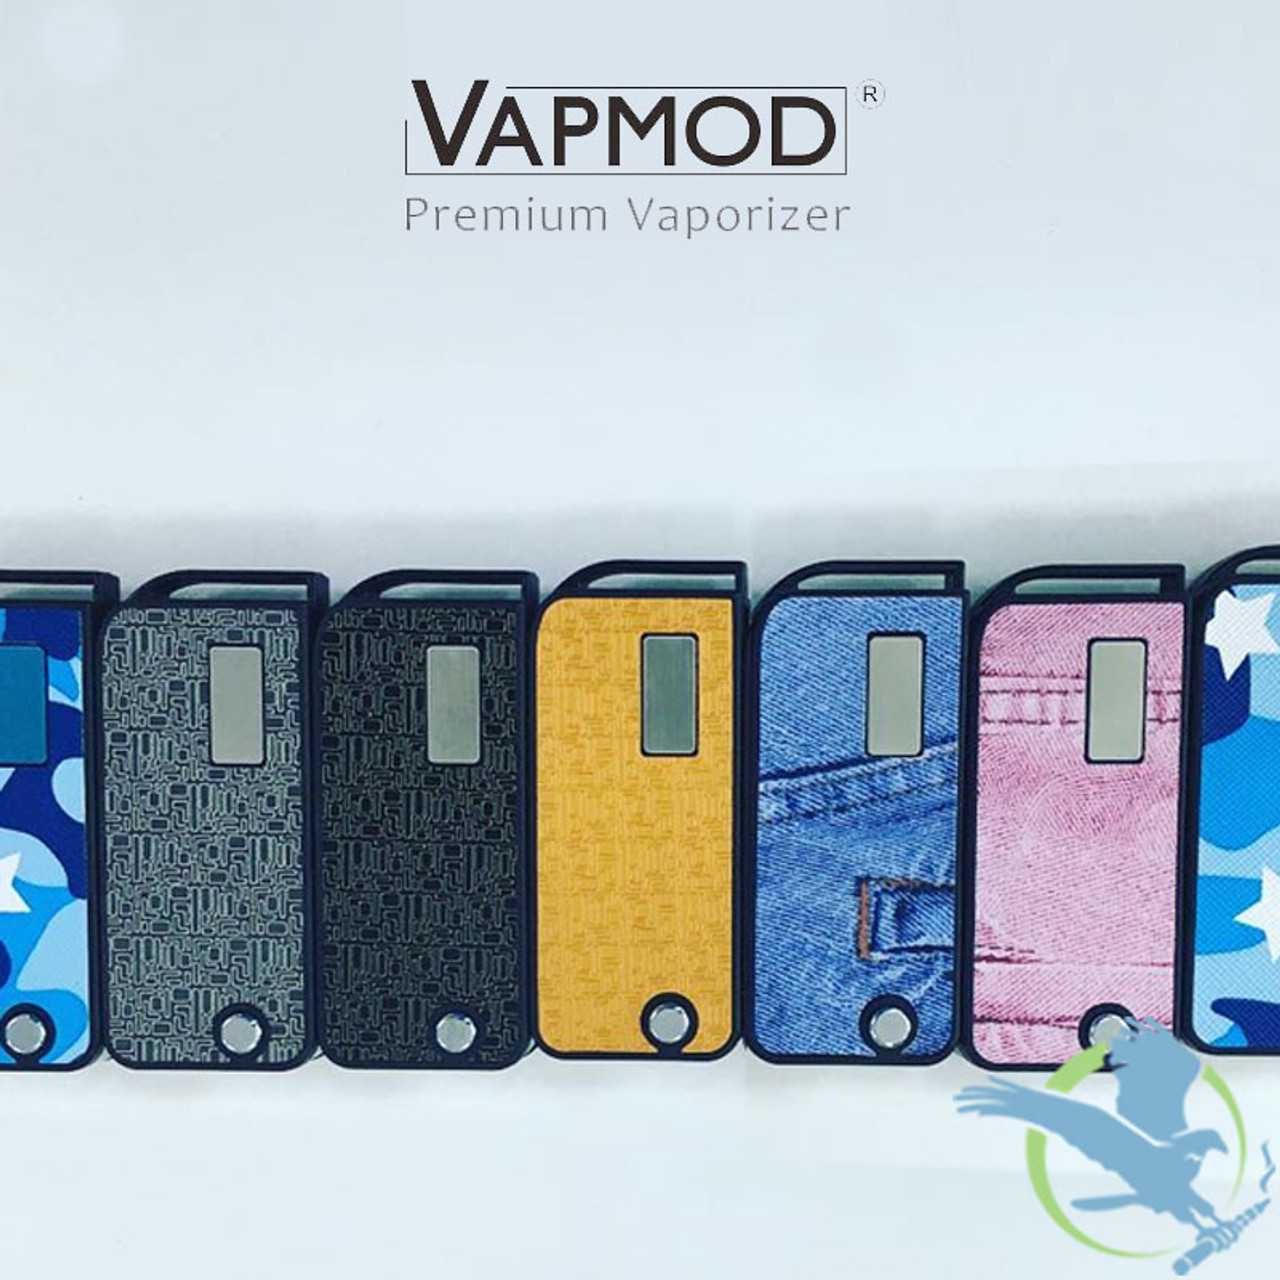 VAPMOD Rock 710 650mAh Oil/Wax Vaporizer Express Mod (MSRP $25 00)